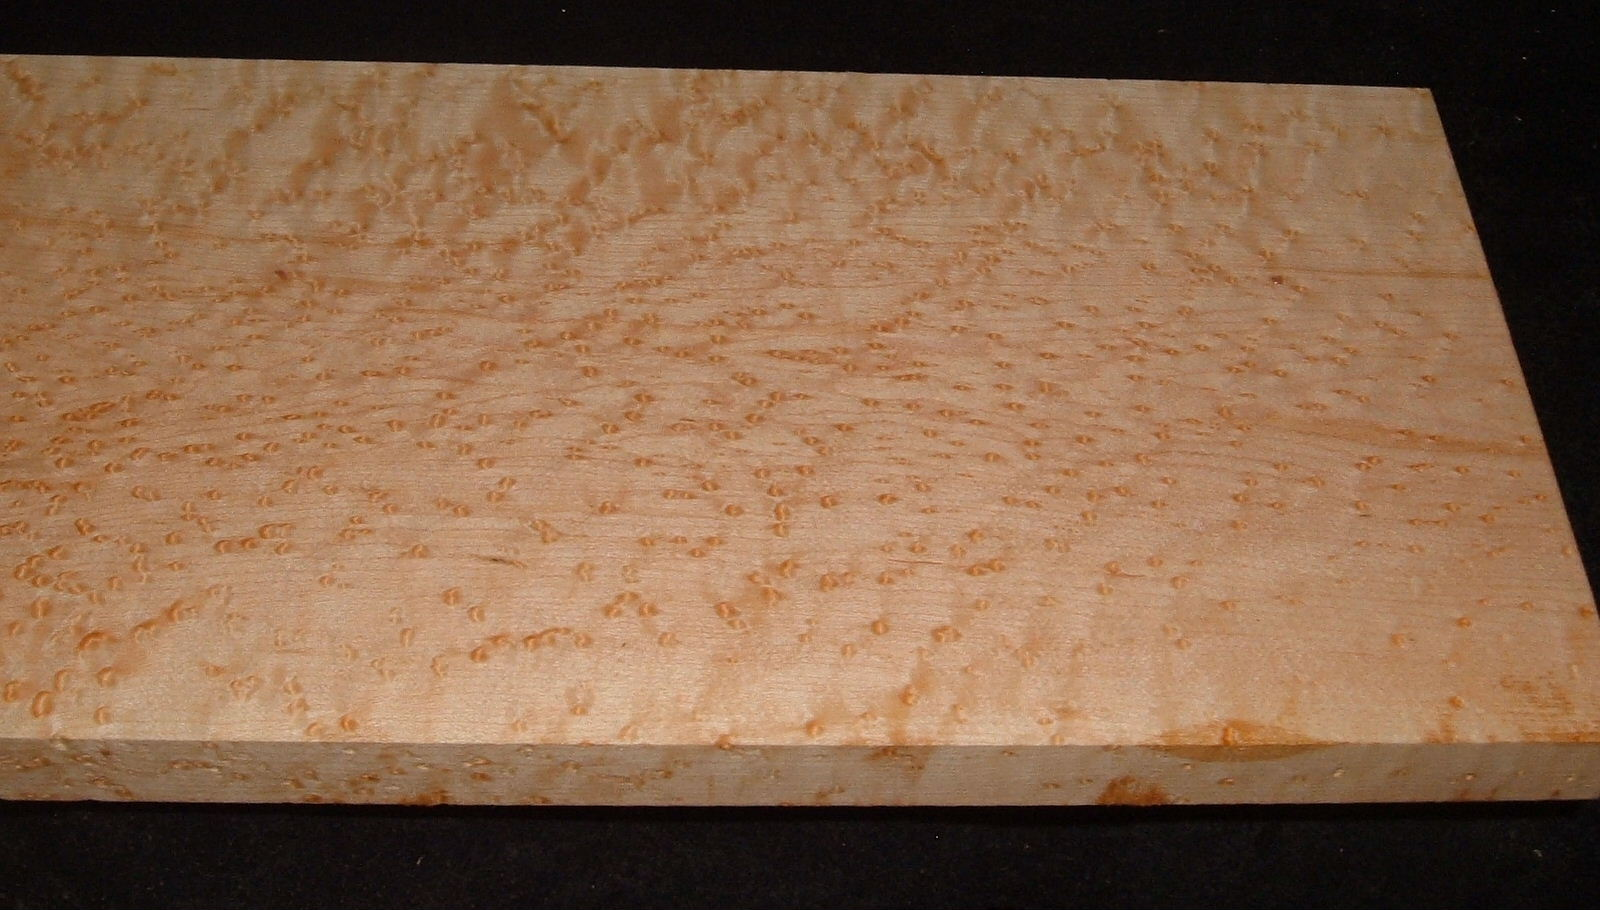 BEM2103-55, +7/8x7-3/8x32, Quilted Birdseye Hard Maple